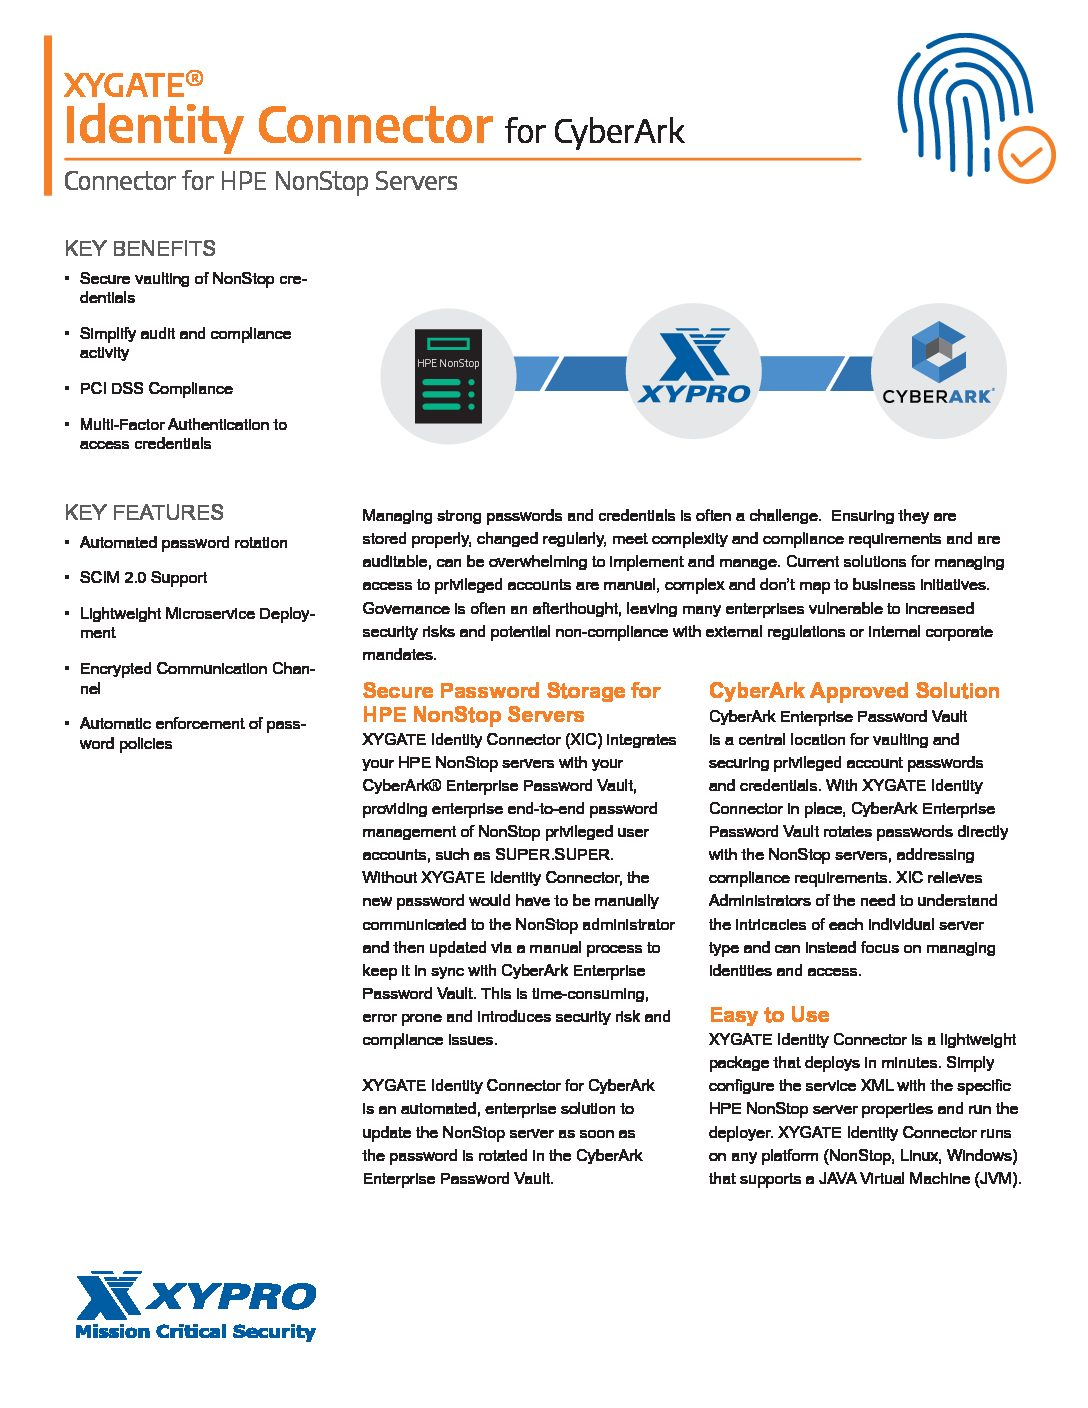 XYGATE Identity Connector for CyberArk Data Sheet (PDF)